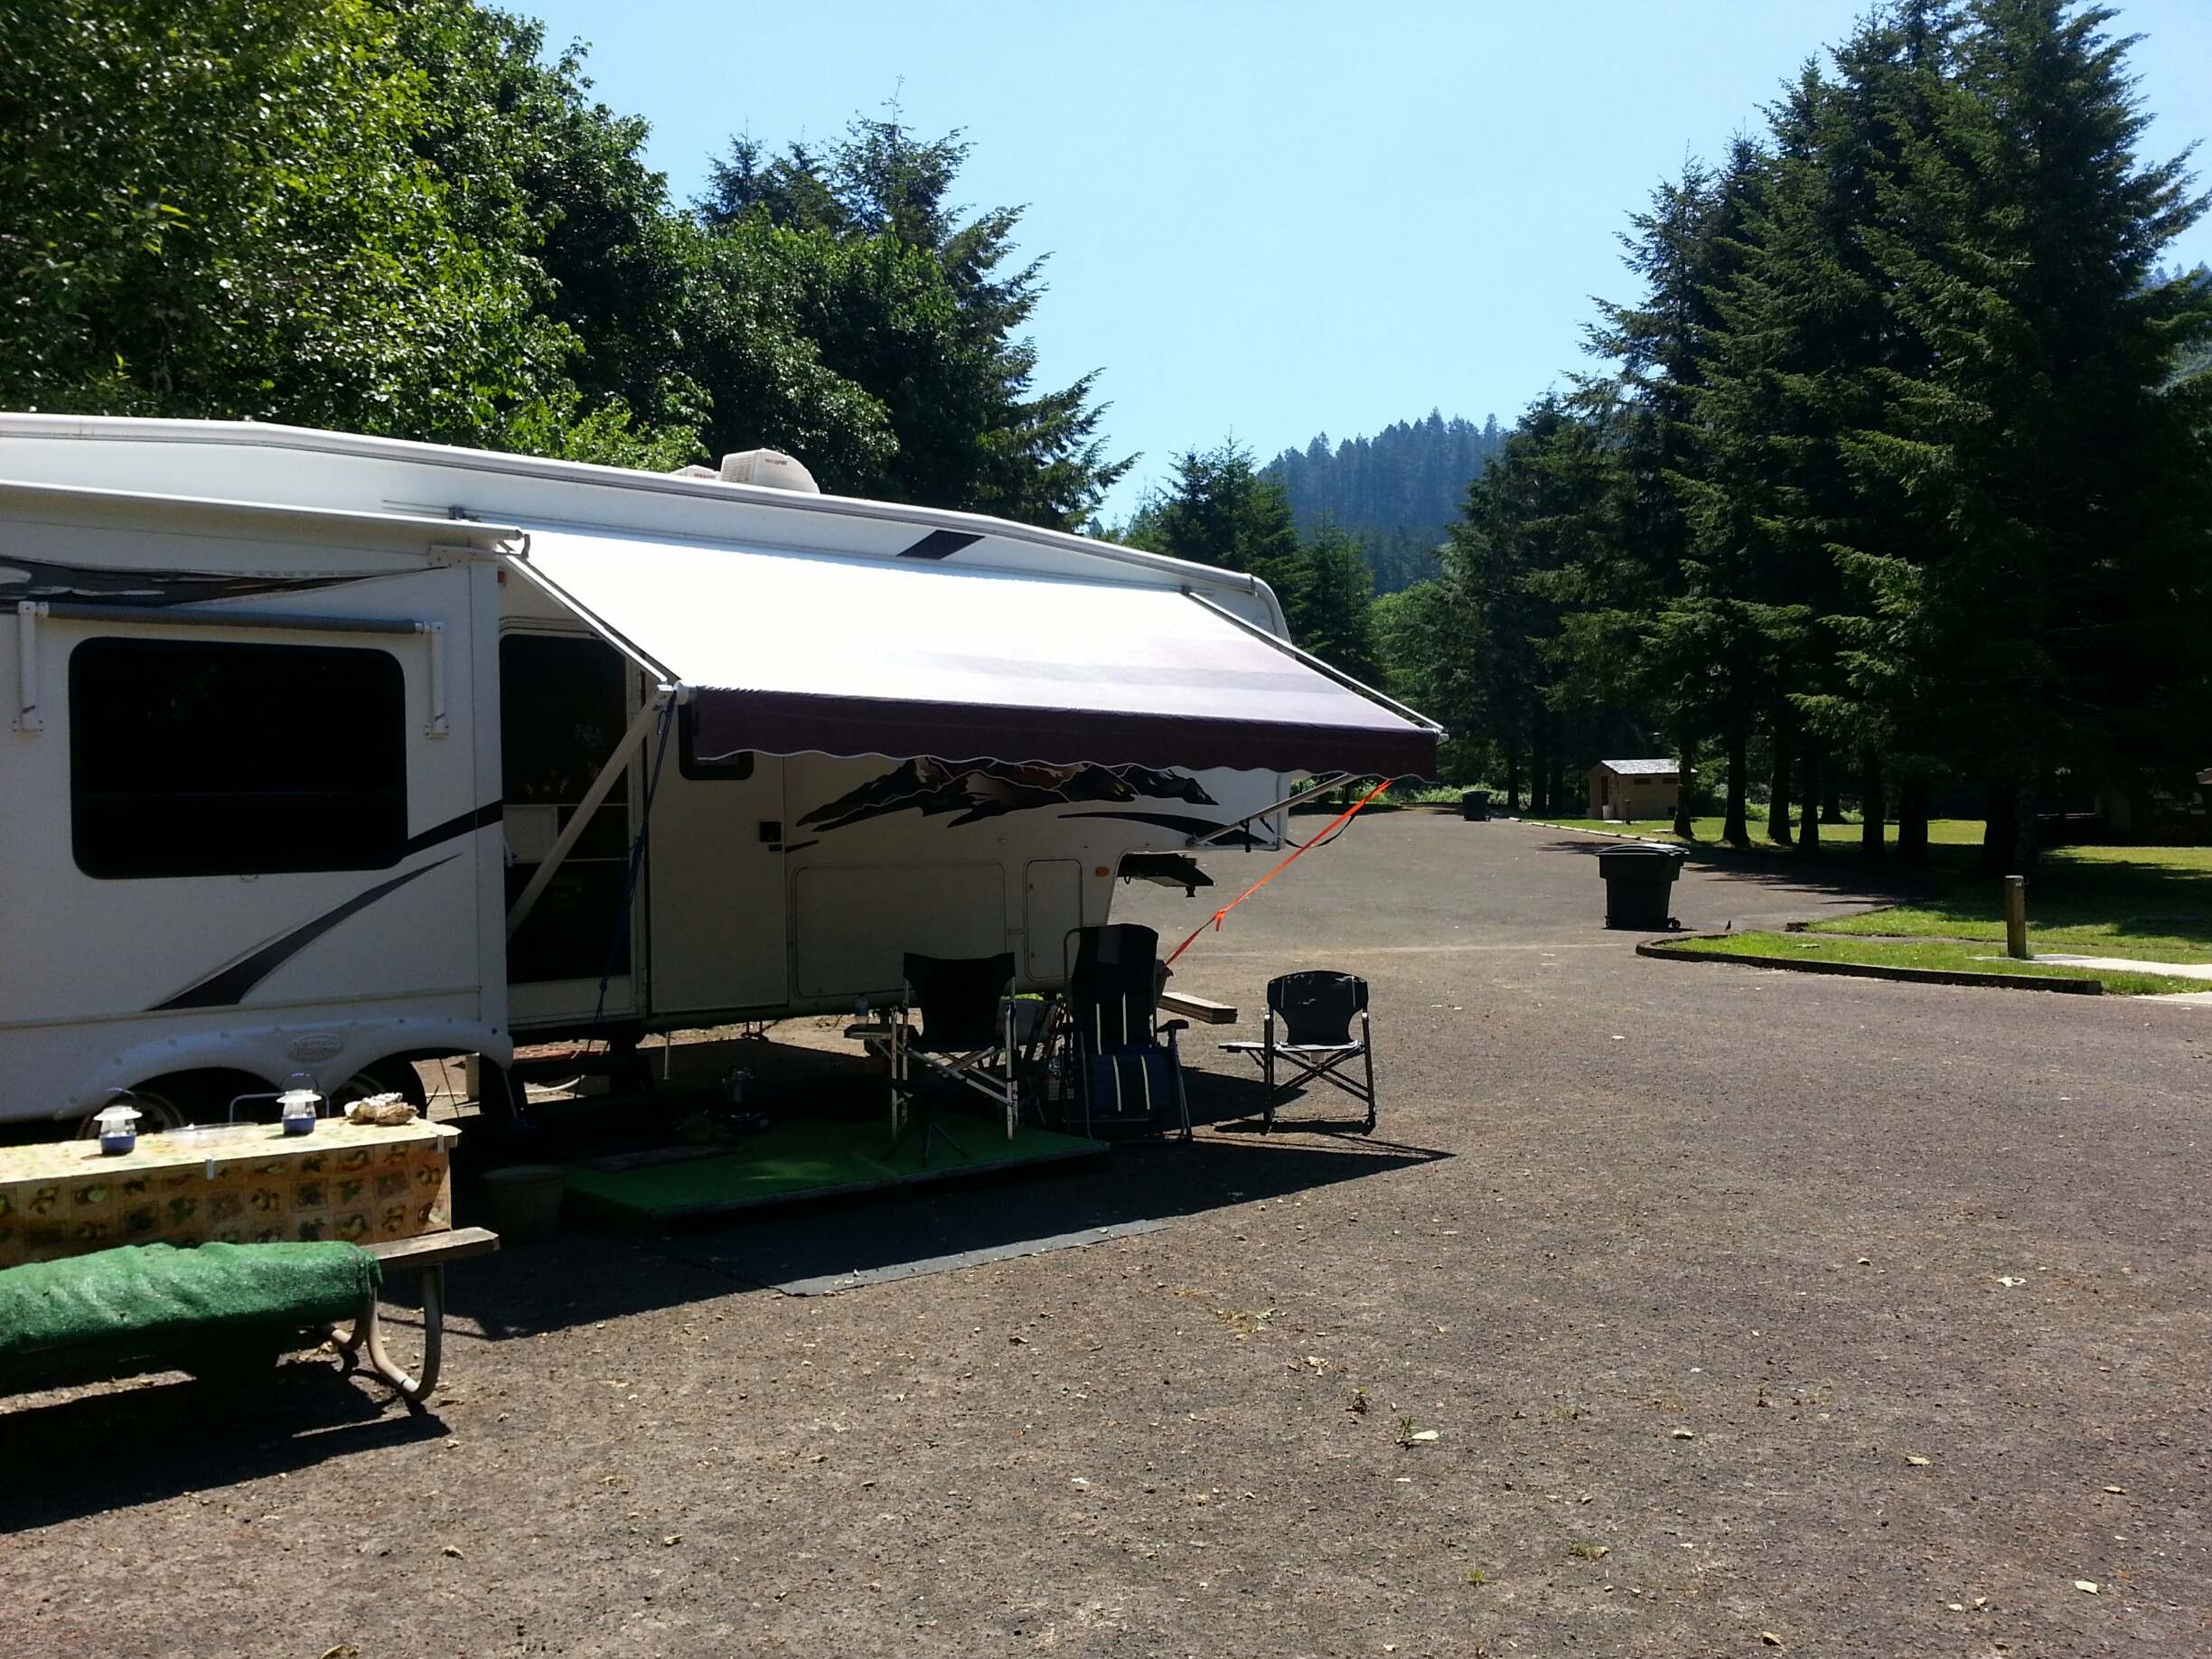 Also a view of the group area - by River Edge Campground Hosts, Jim & Faunie Menke